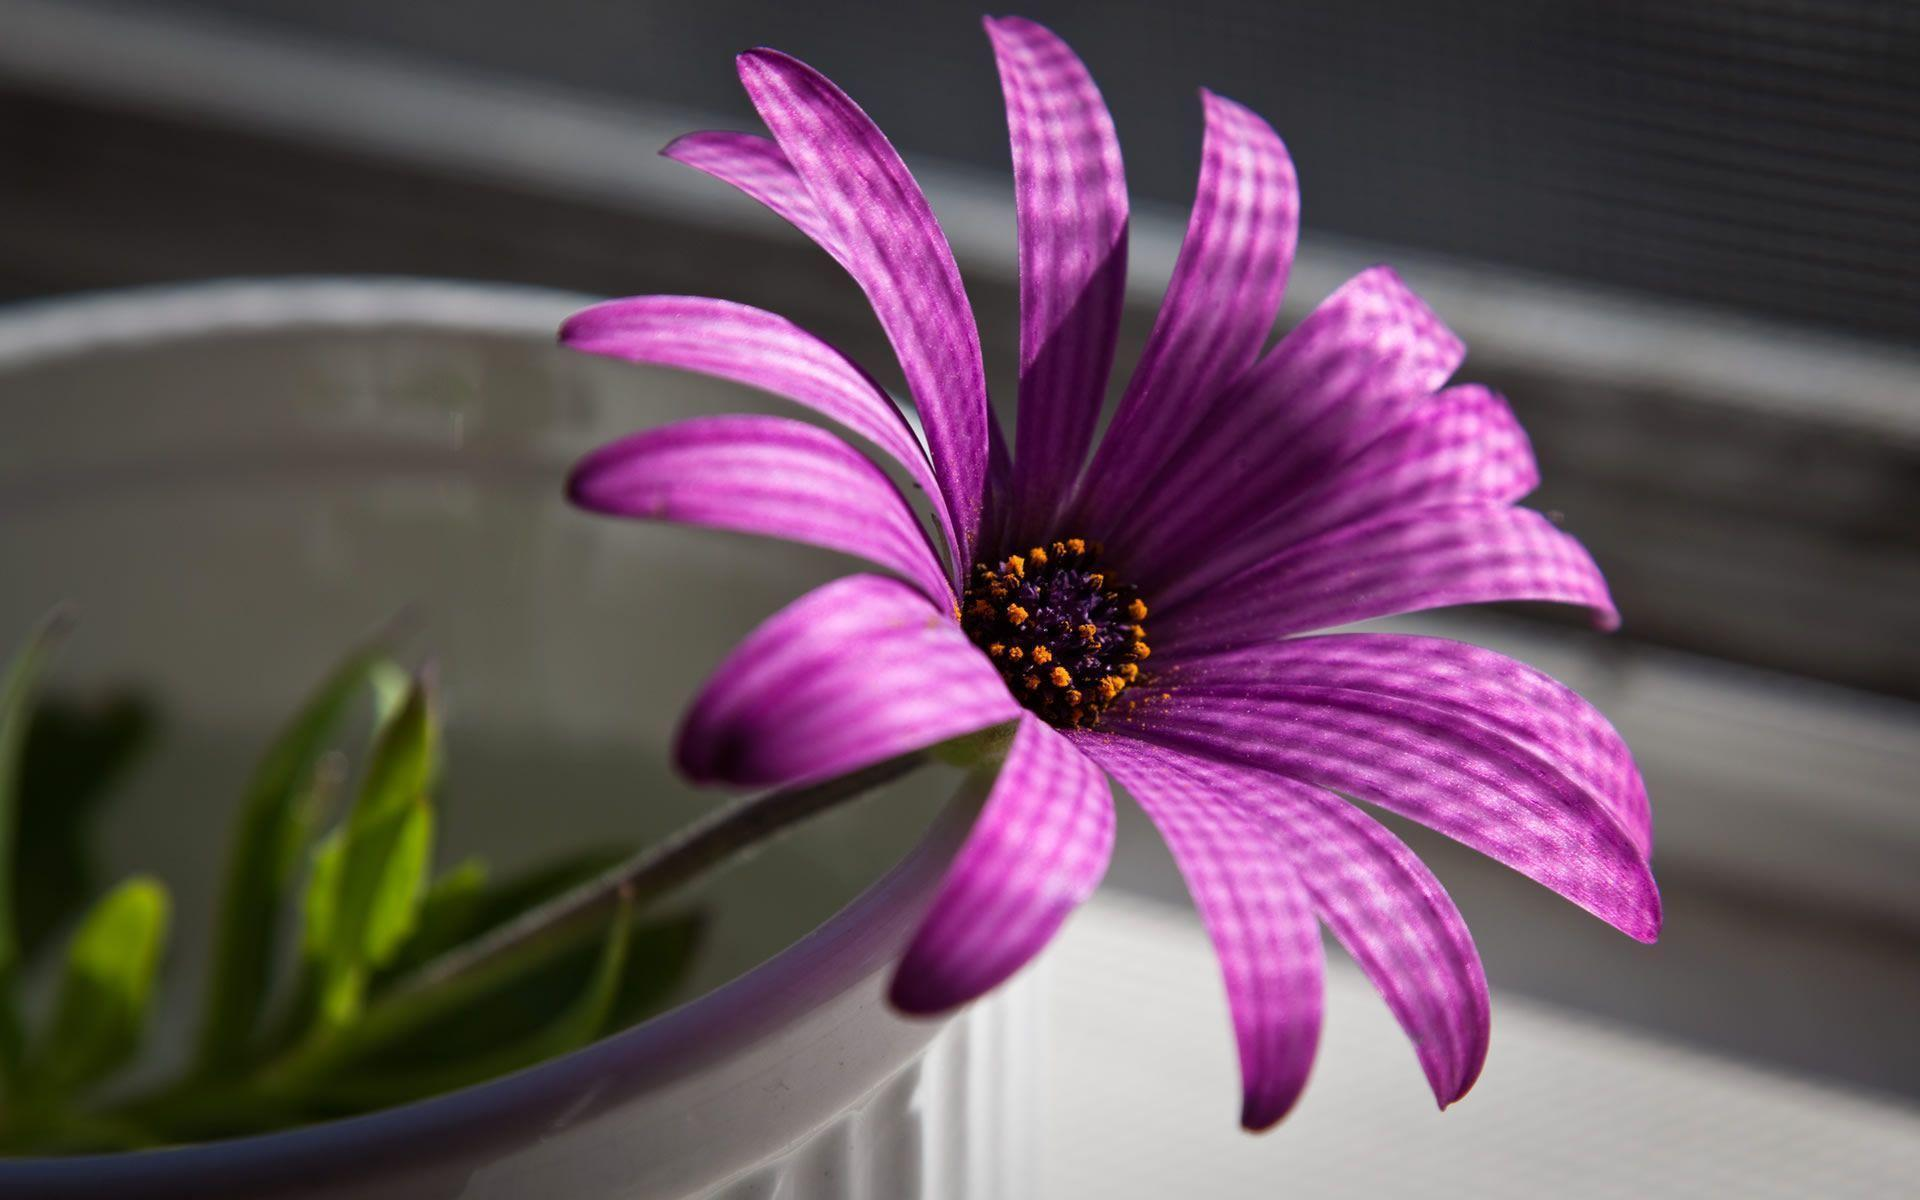 Flower Image Wallpapers - Wallpaper Cave